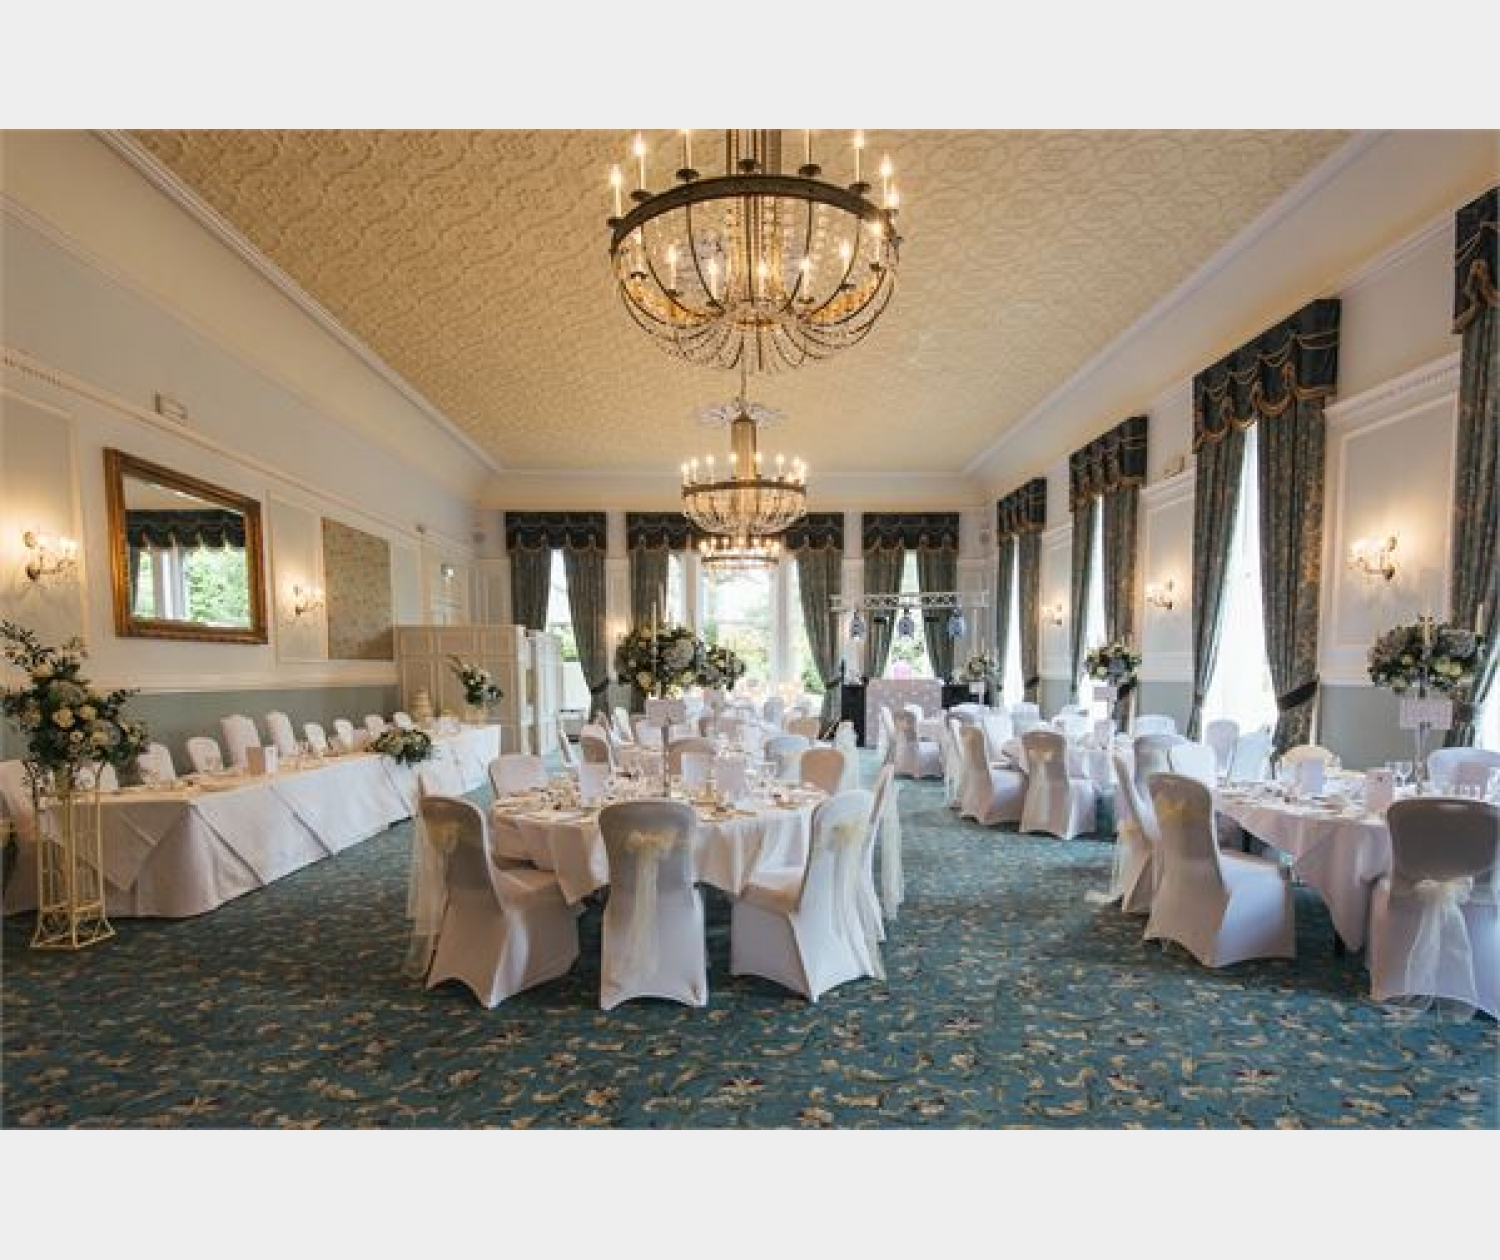 The Spa Hotel Wedding Show